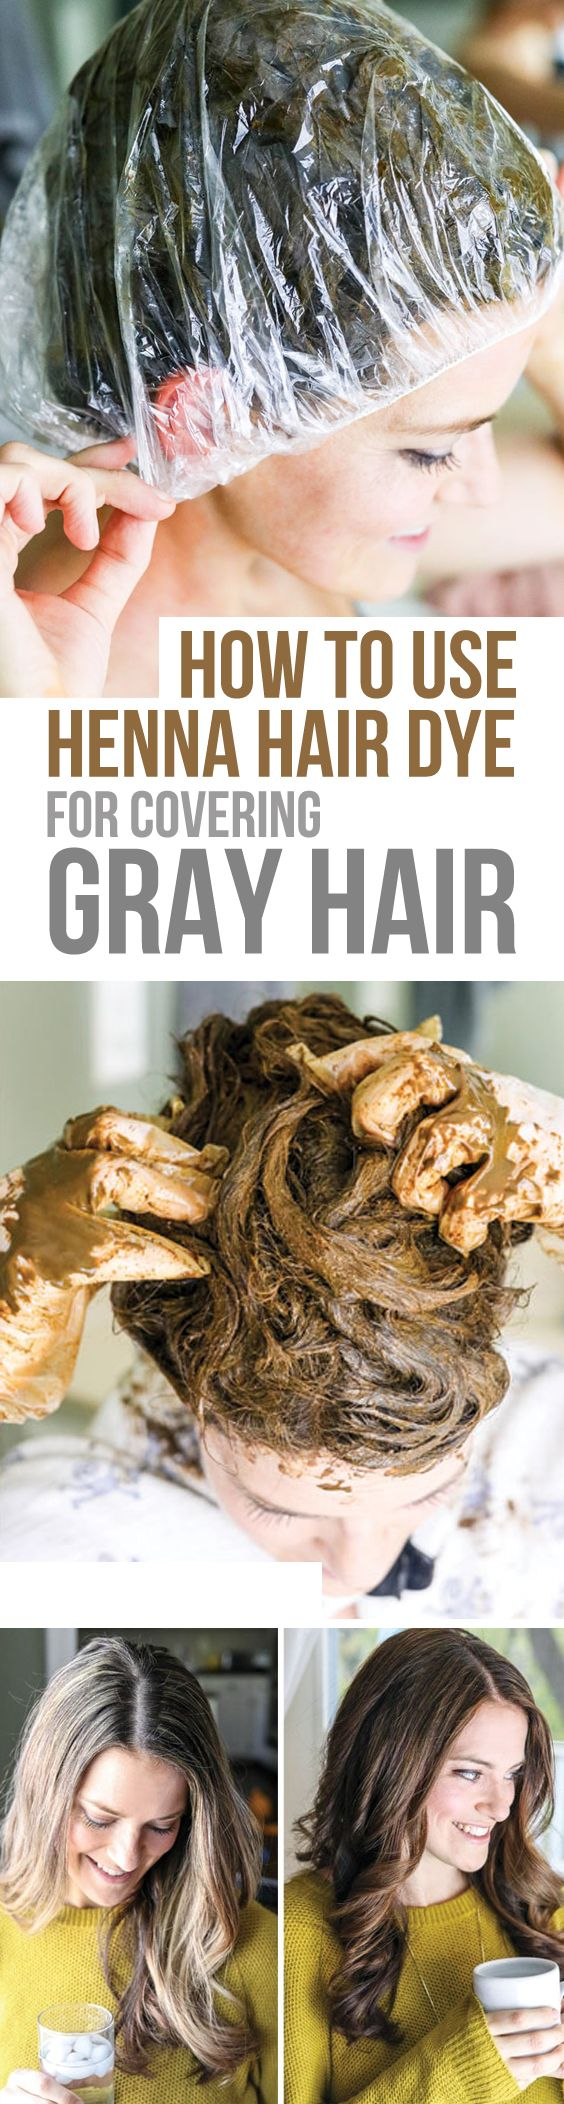 Here's a step-by-step tutorial for covering gray hair using 100% natural henna hair dye. Avoid the mistakes I made the first time I tried it! (Sponsored by Morrocco Method, my favorite brand of henna hair dye)